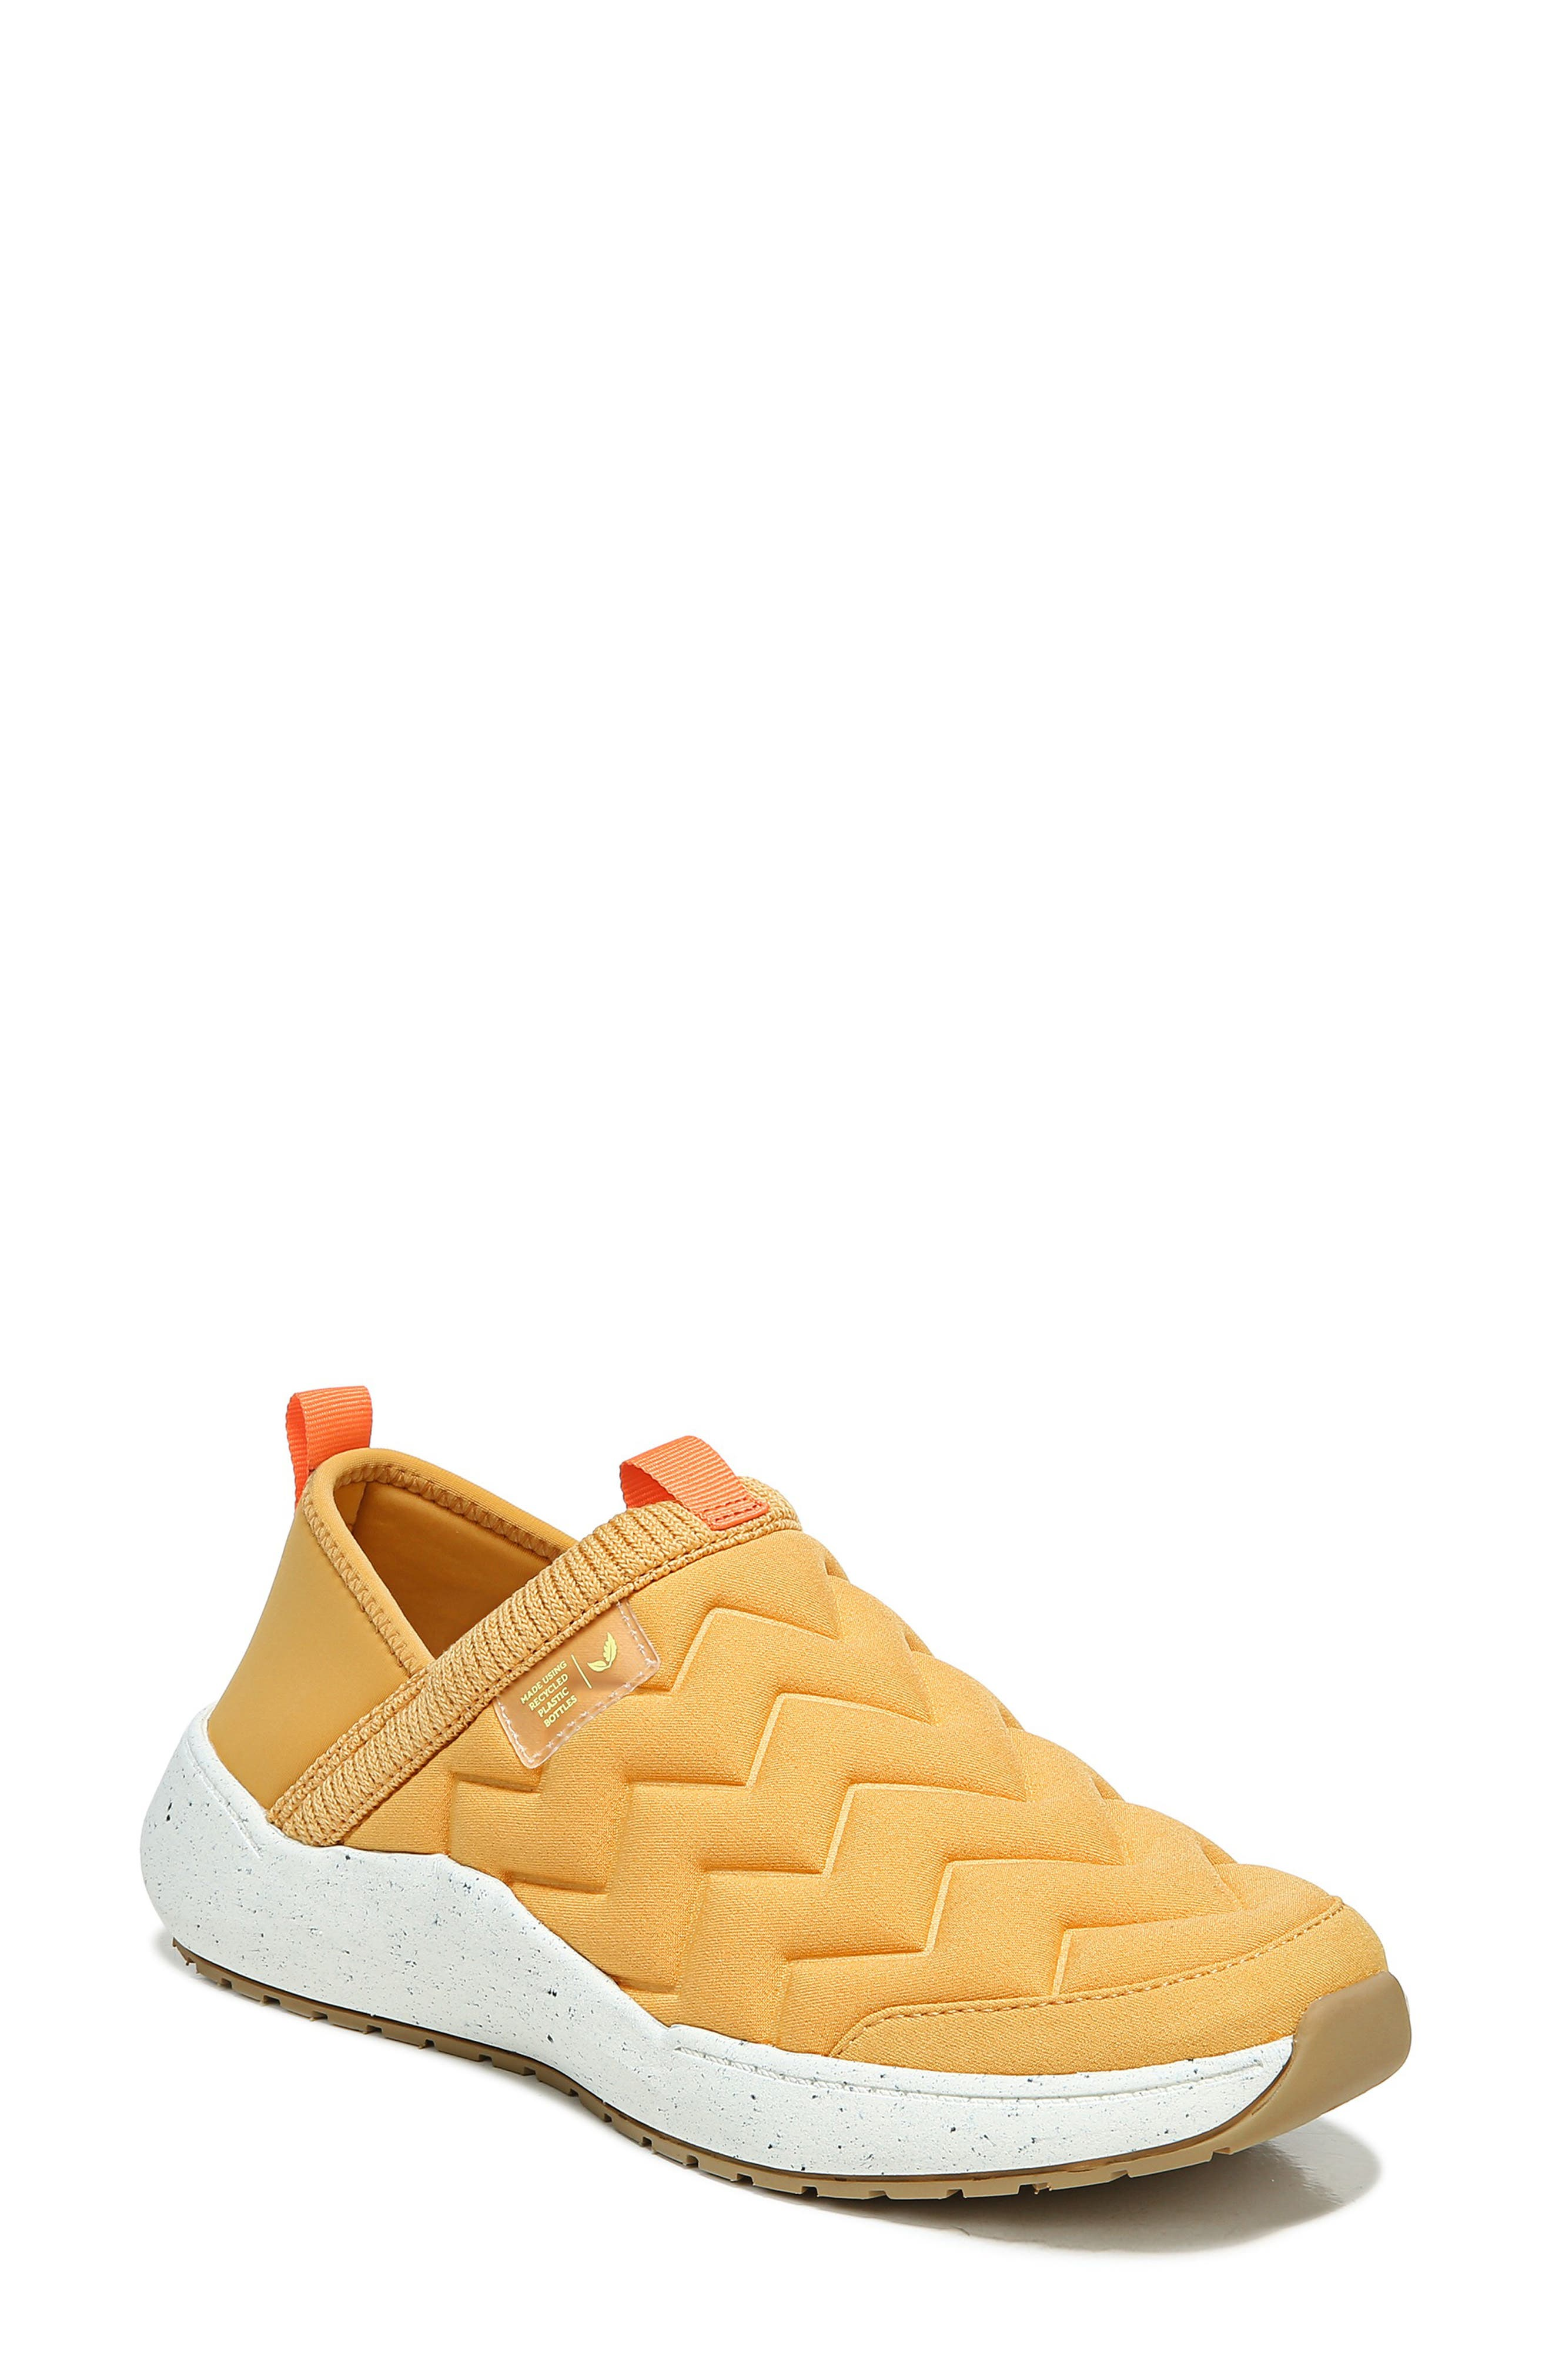 Home & Out Sneaker